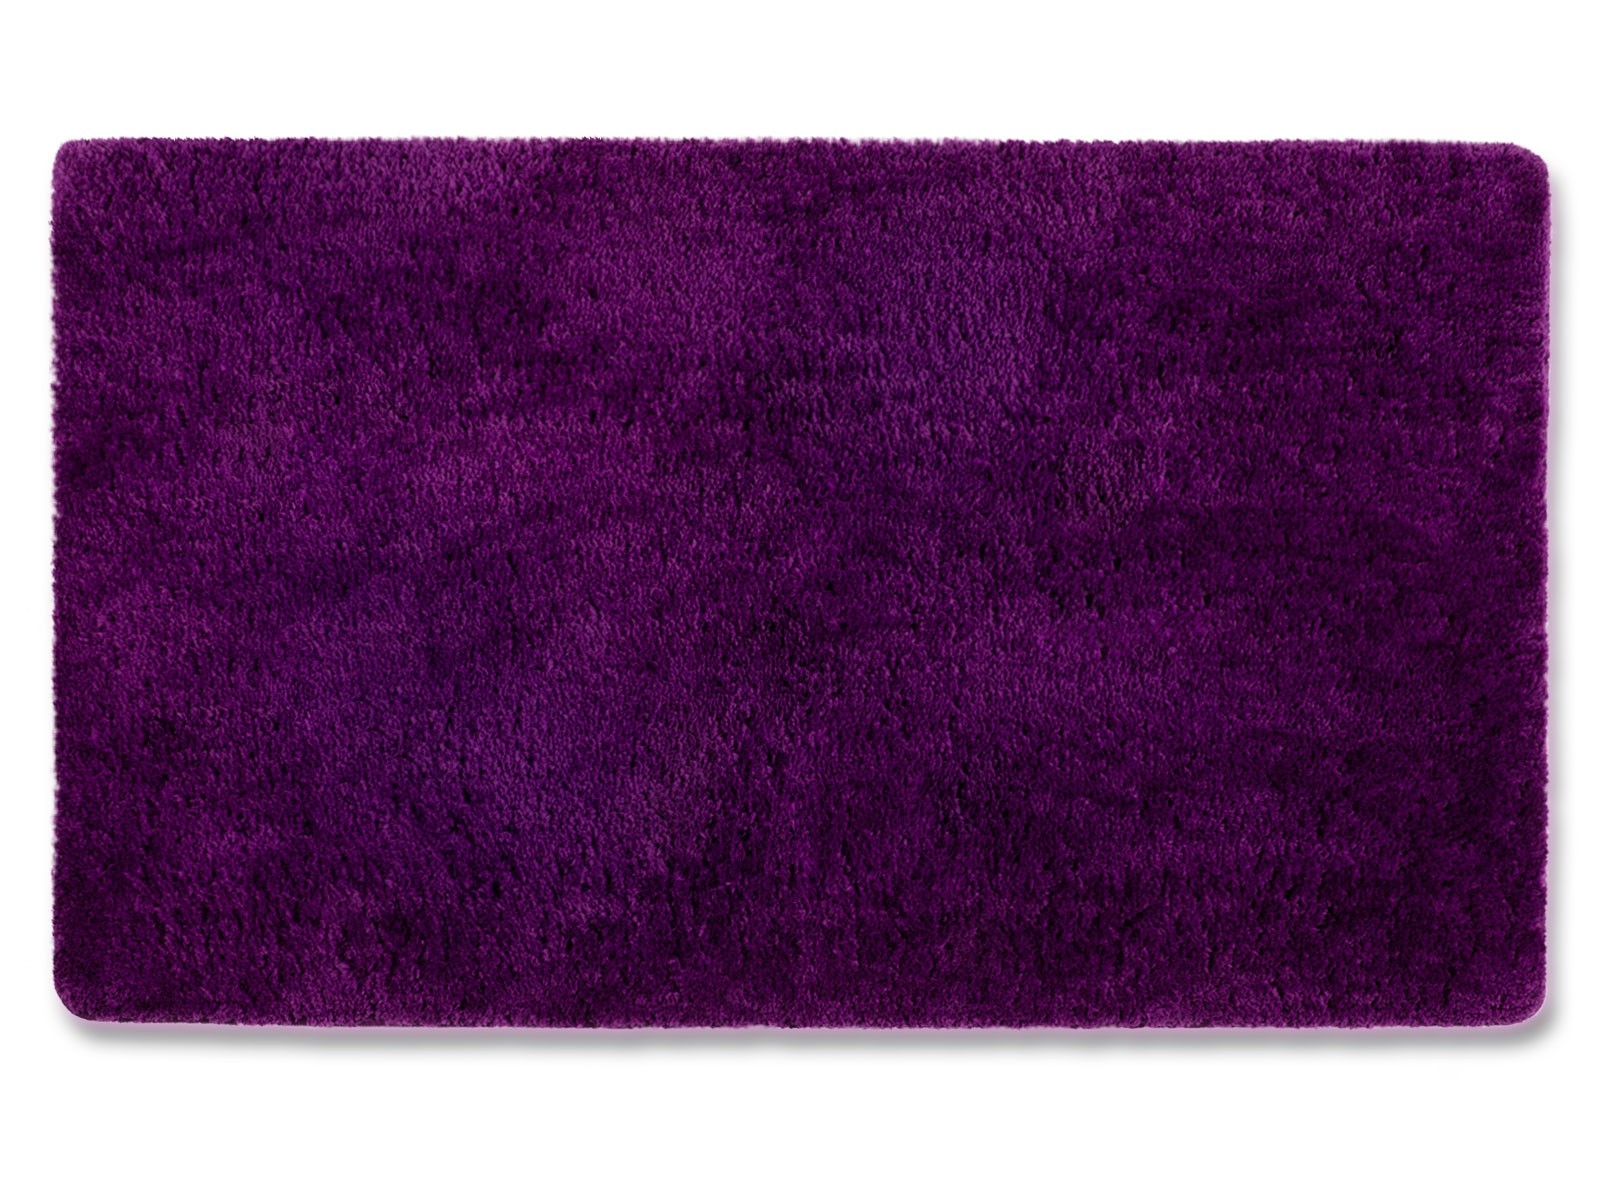 Lilac Rubber Bath Mat